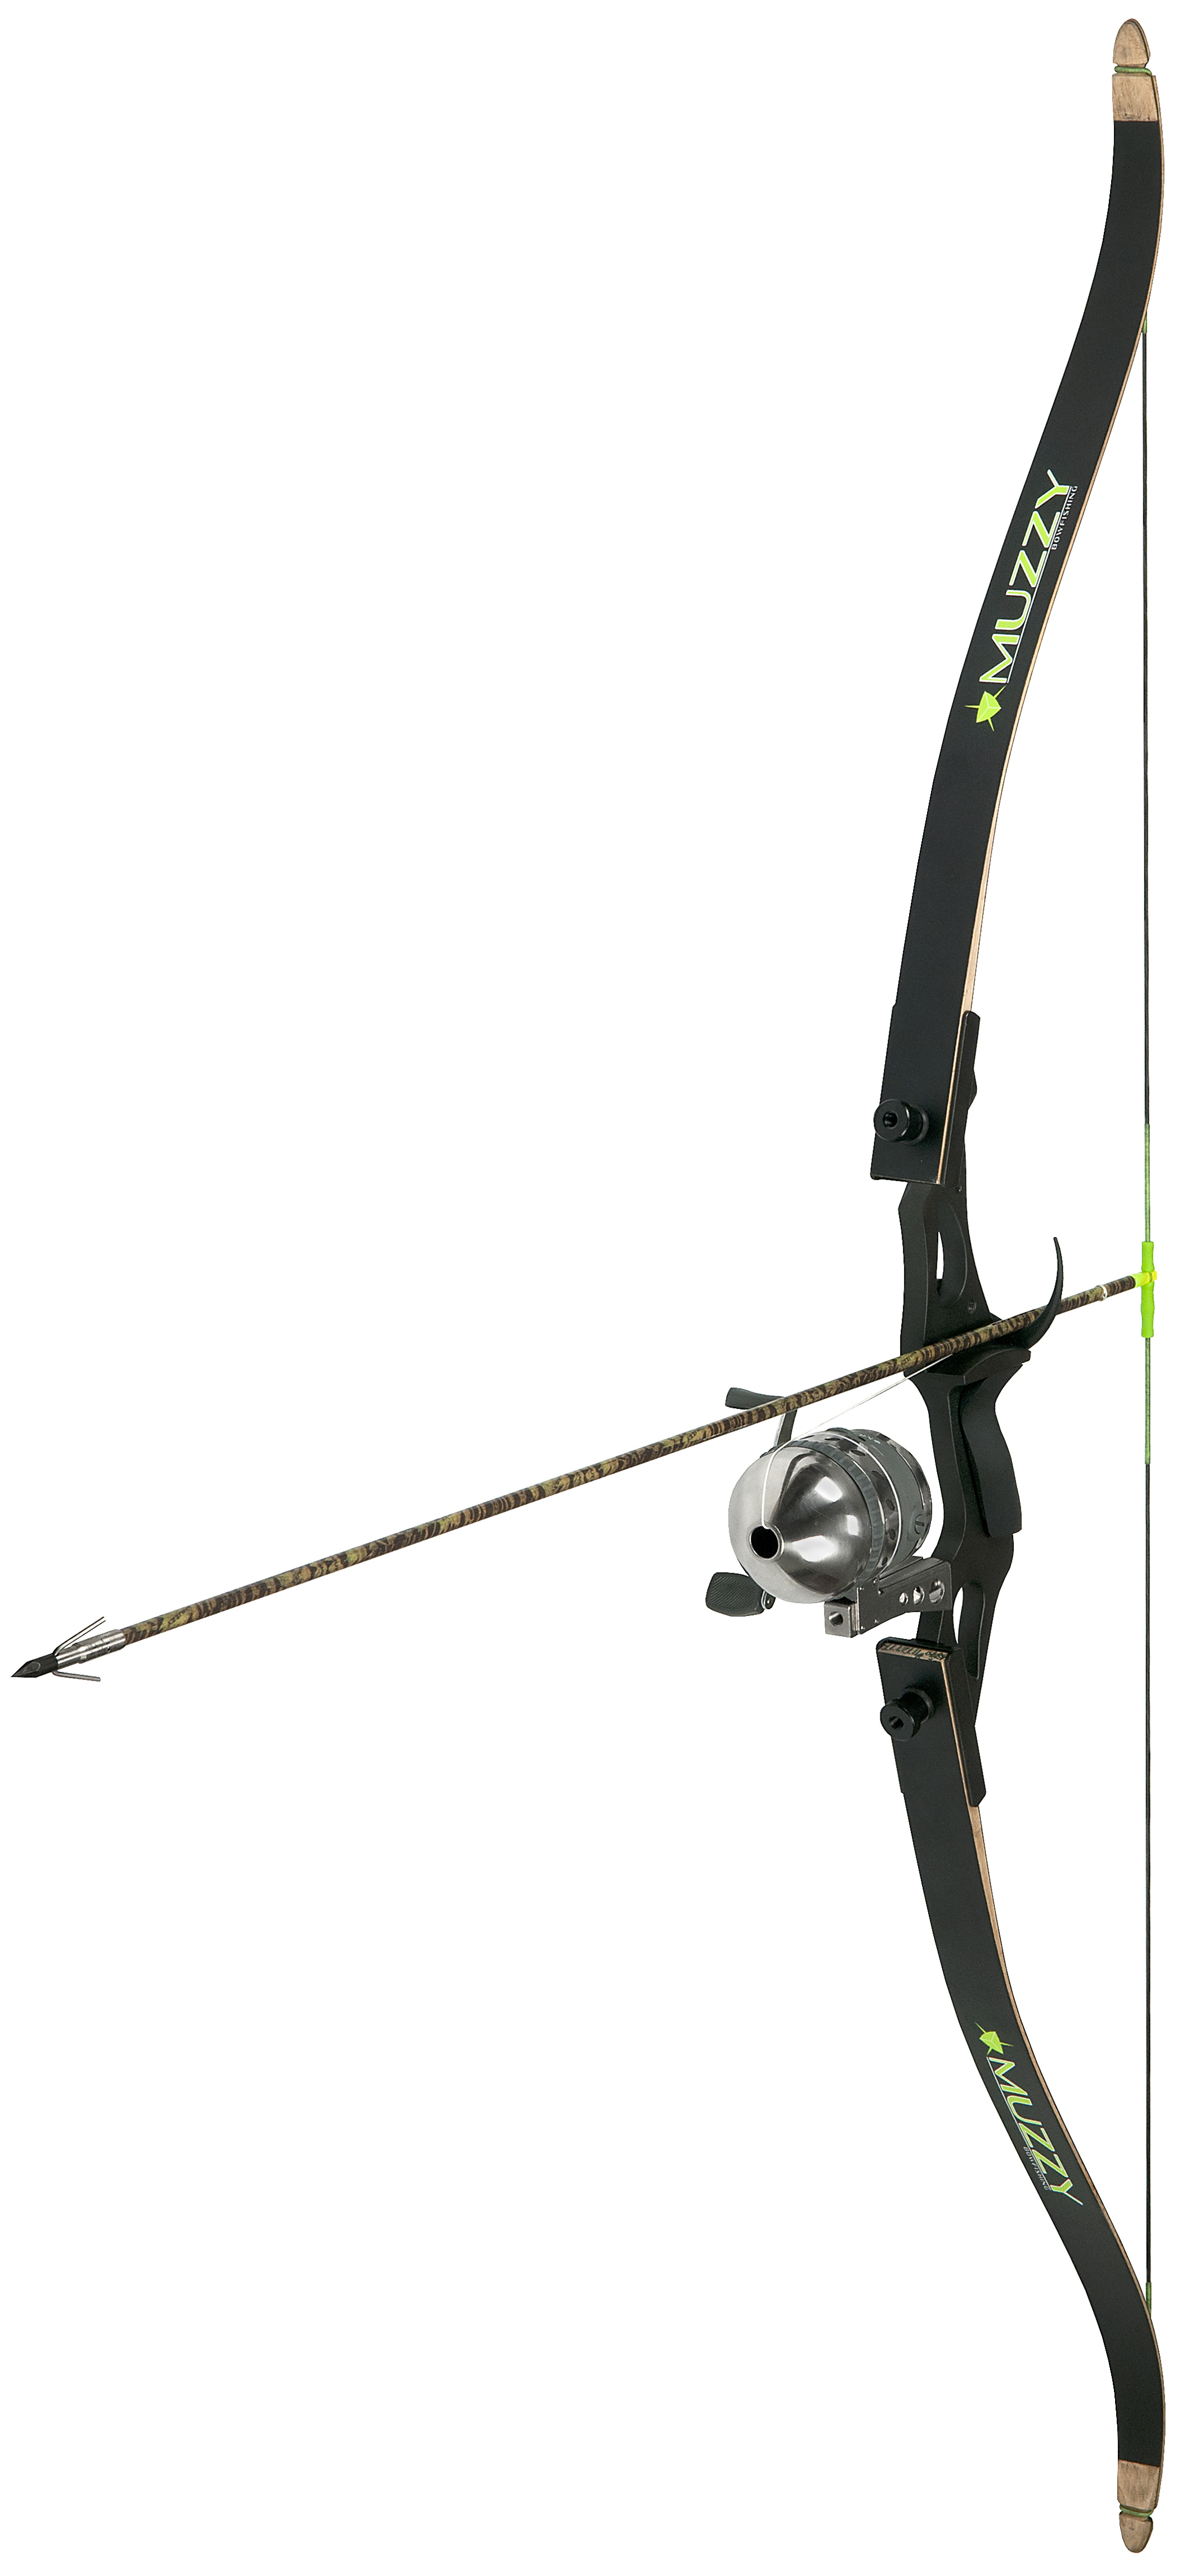 Ata Impale Scales Easier With Muzzy S Bowfishing Kit